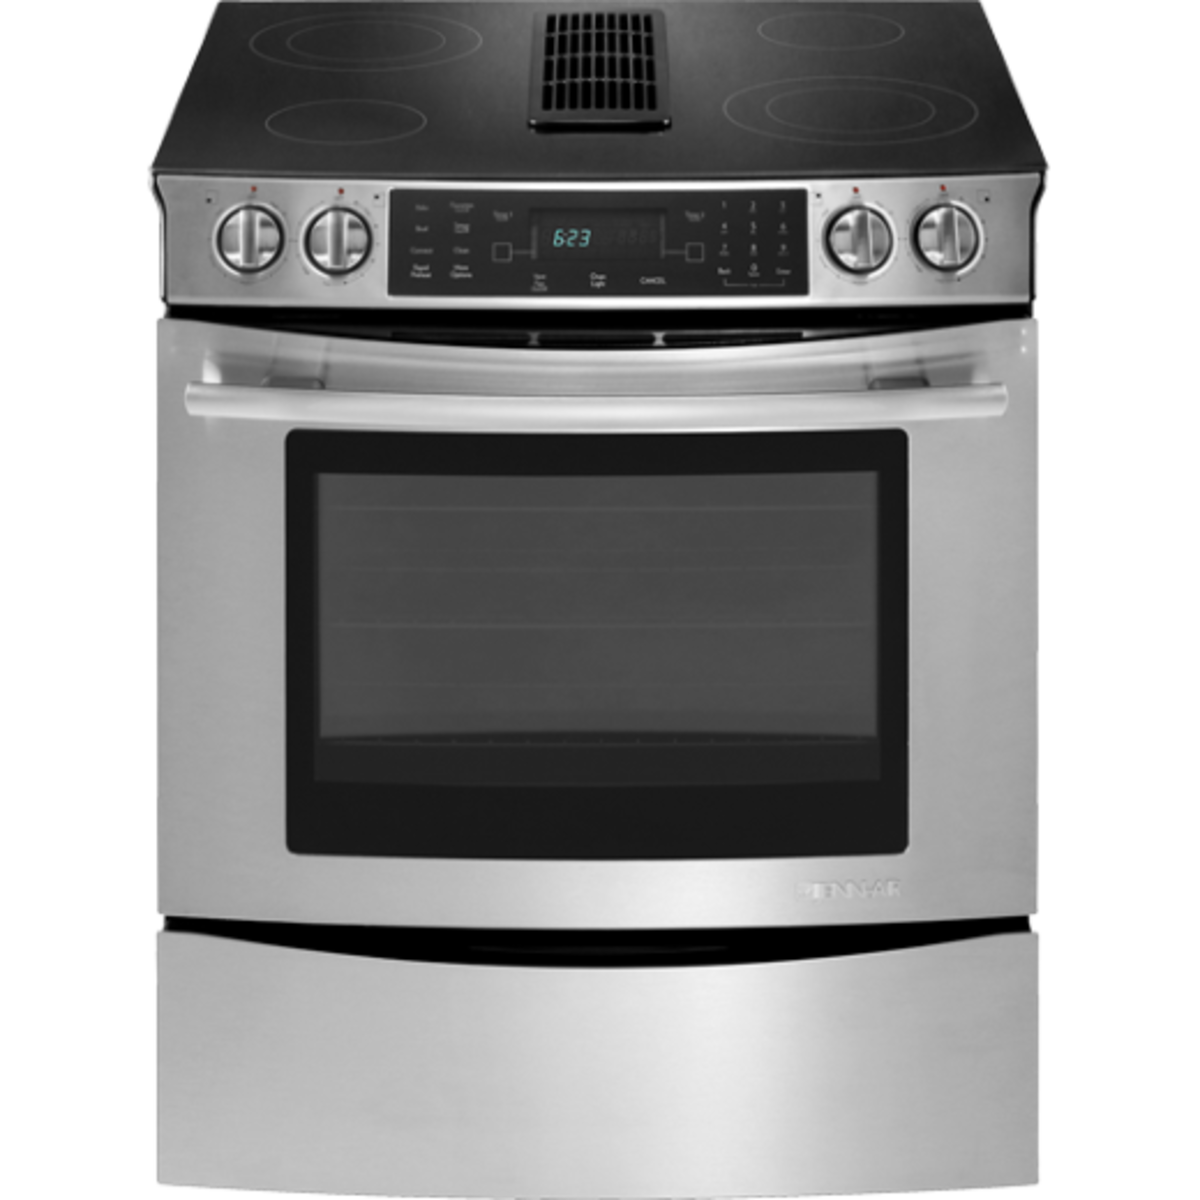 The Jenn Air Jes9800cas Is An Electric Range You Do Not Want In Your Kitchen